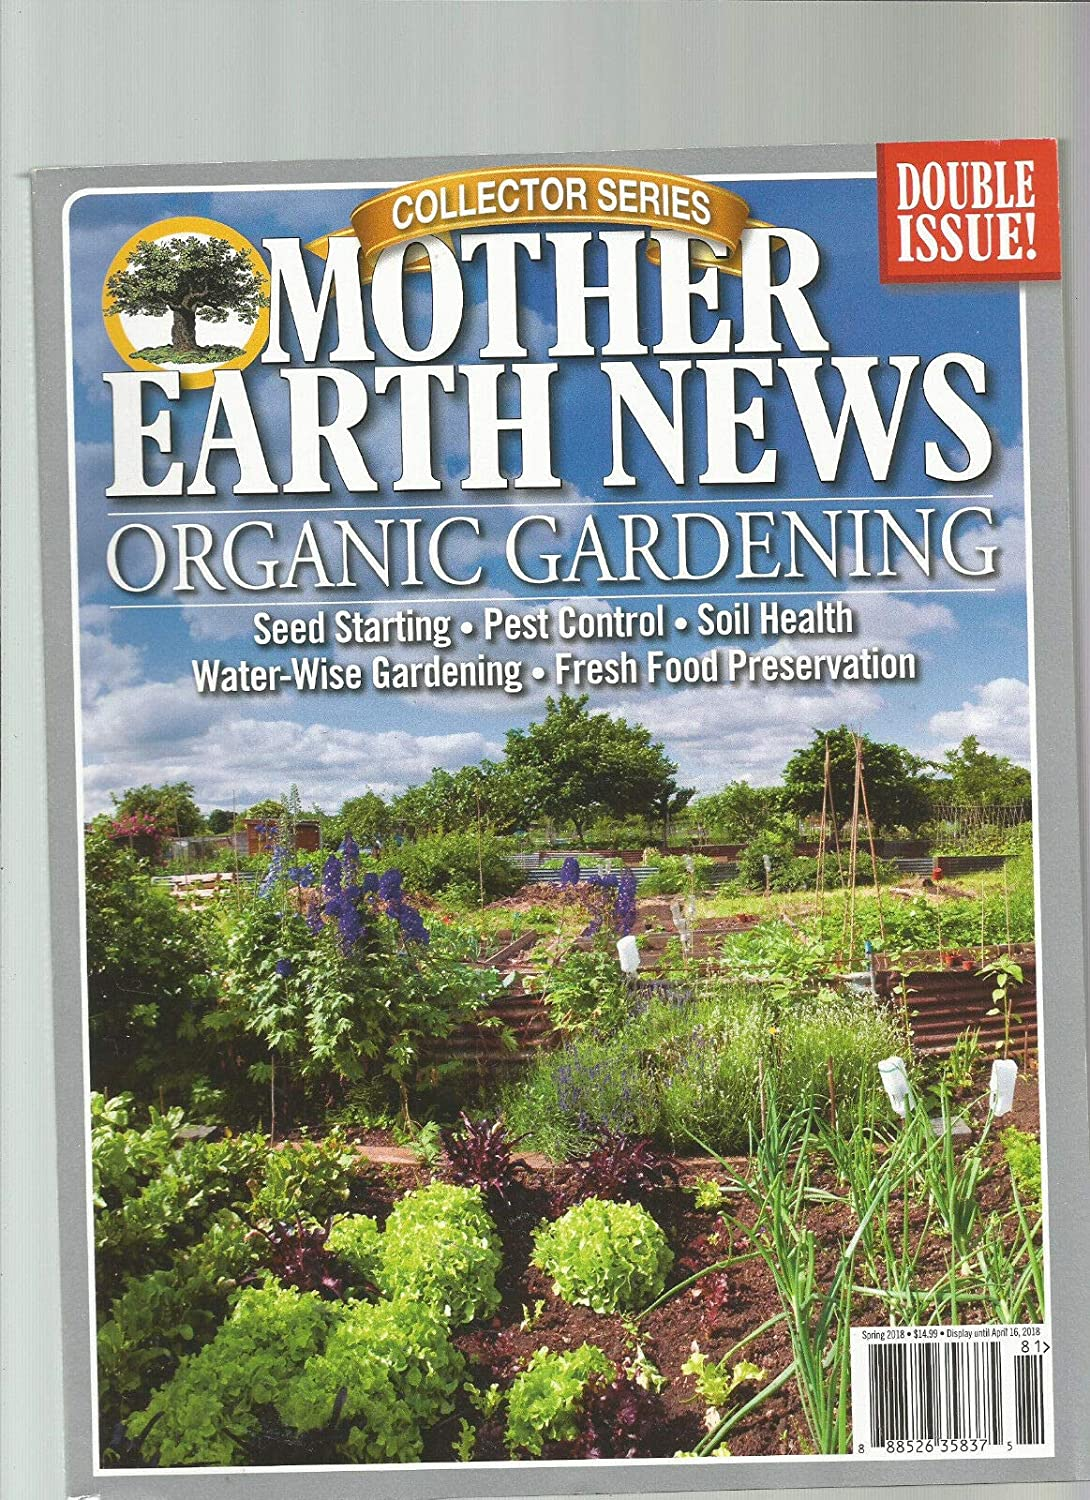 MOTHER EARTH NEWS MAGAZINE COLLECTOR SERIES SPRING 2018,DOUBLE ISSUE,